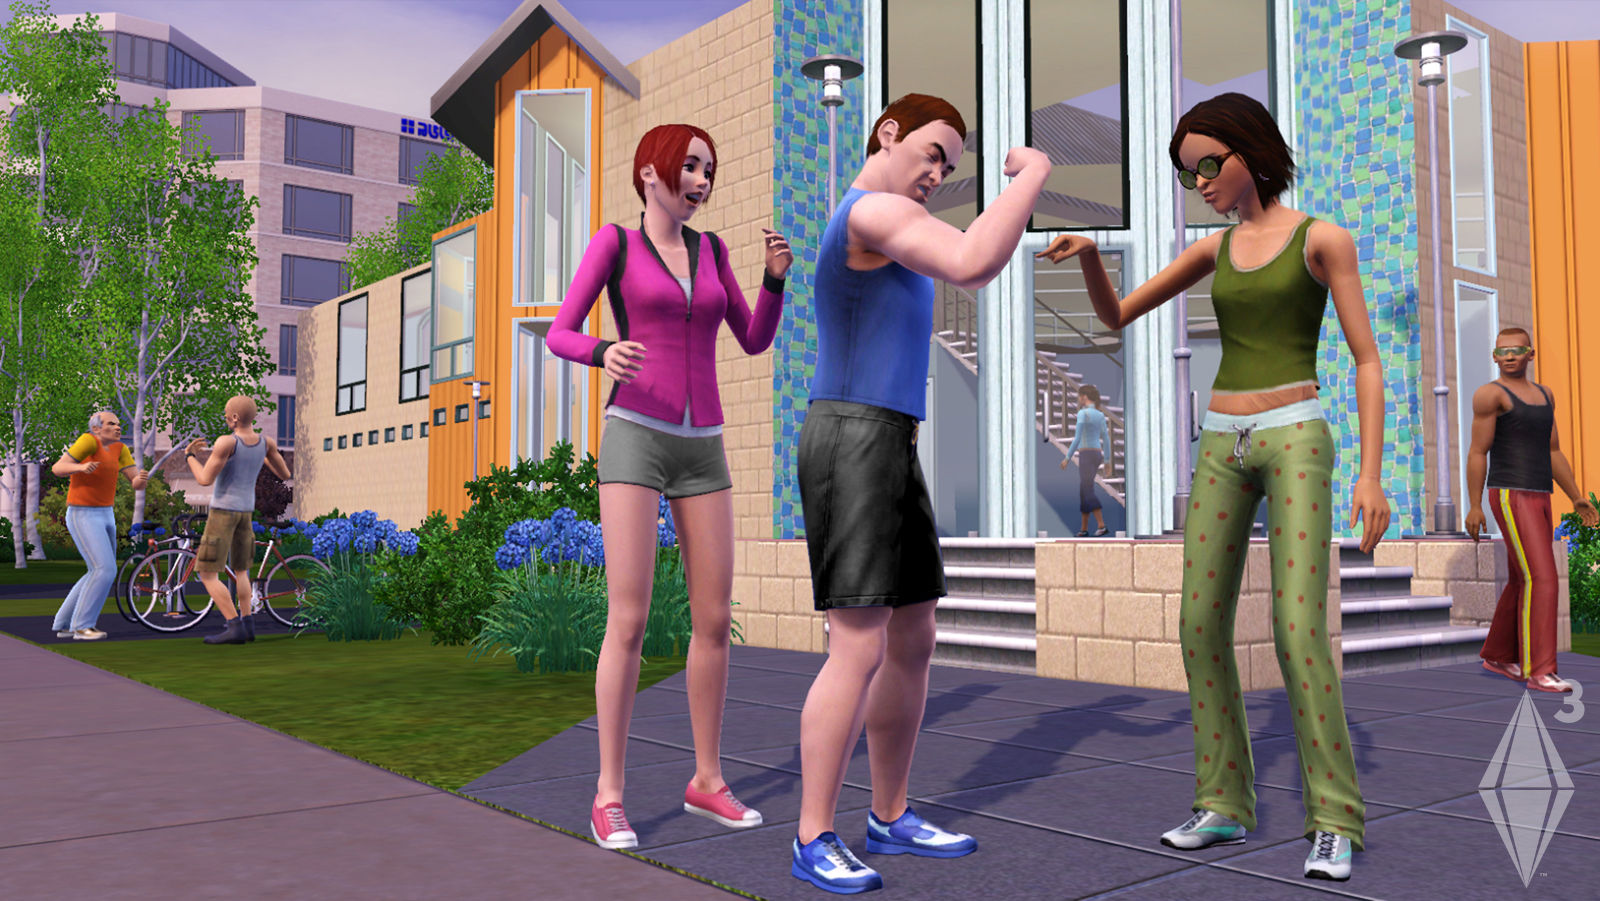 Sims 3 dating profile